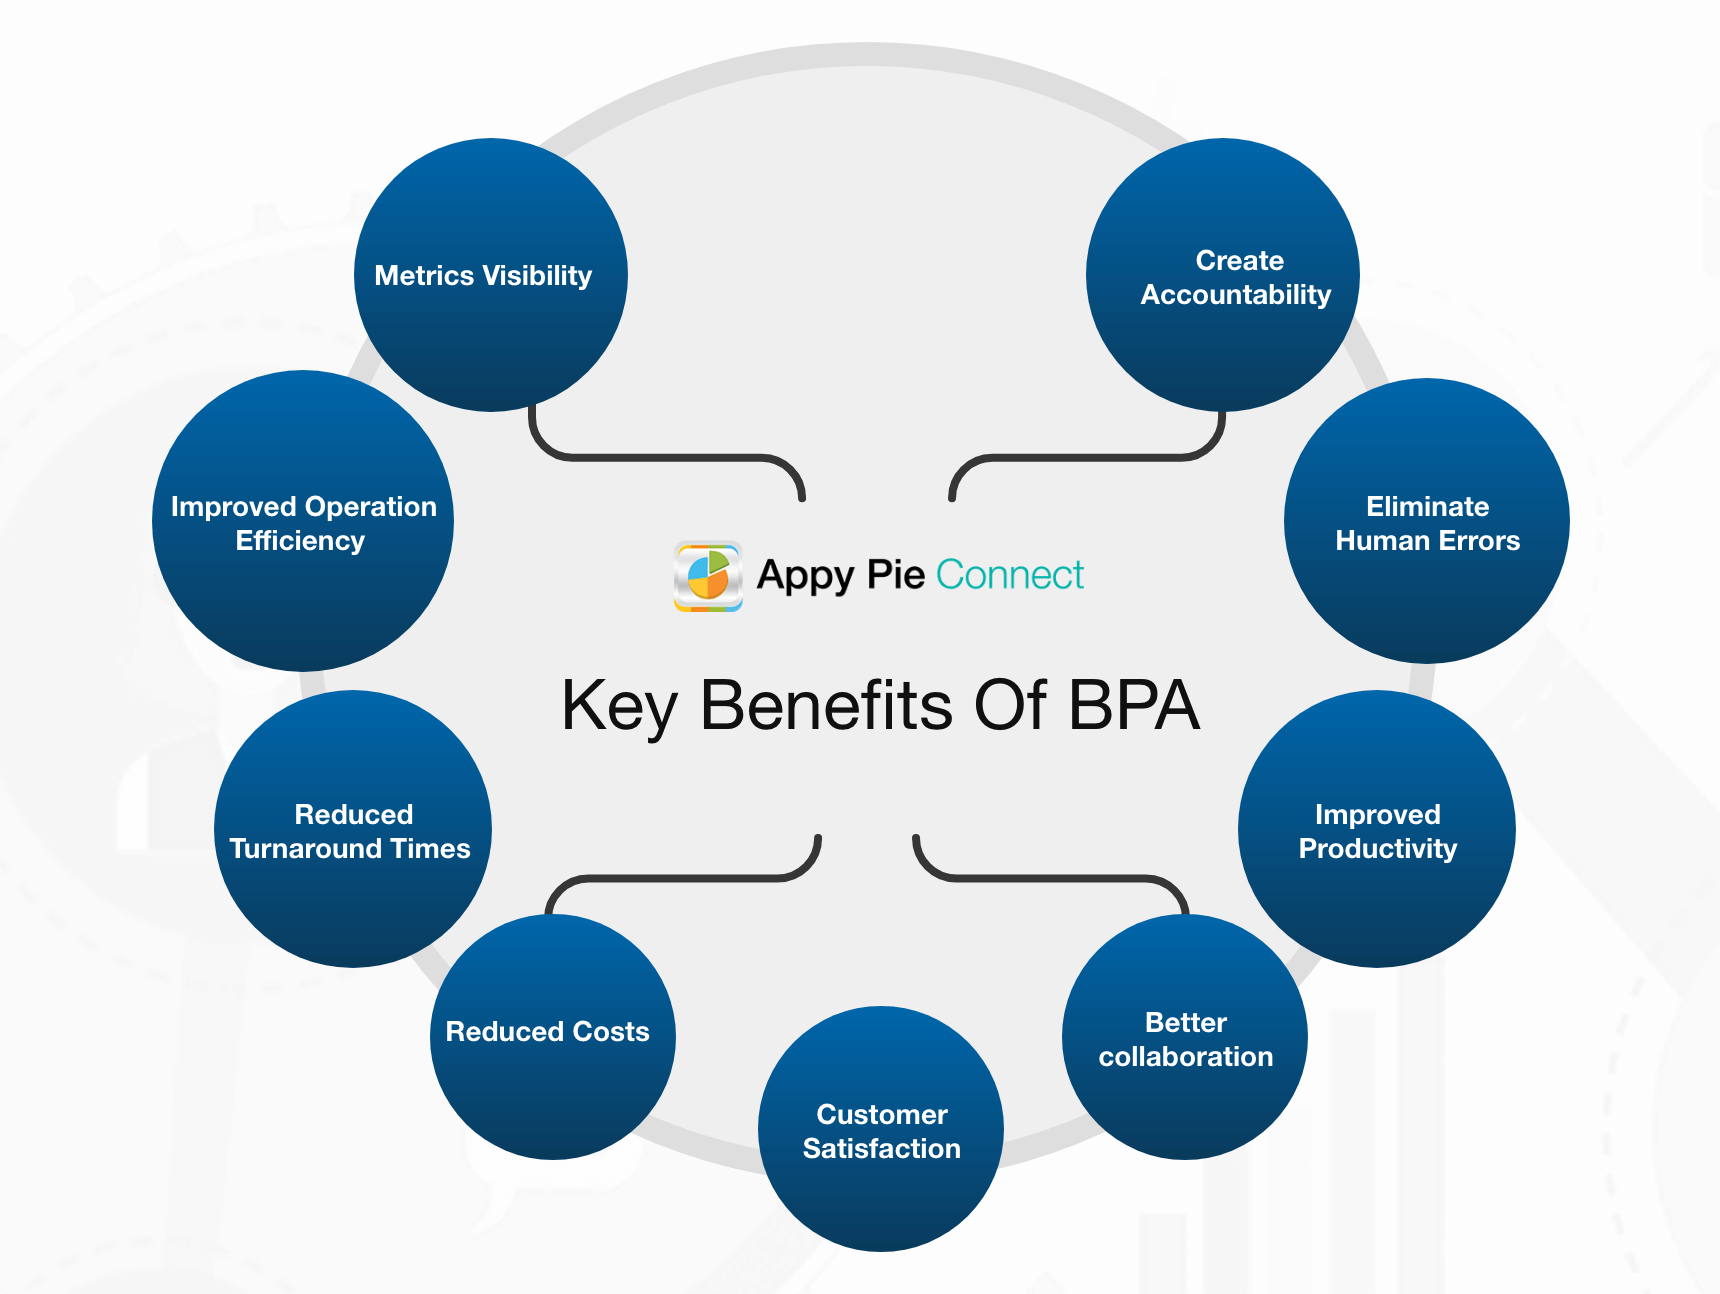 What are the Key benefits of Business Process Automation (BPA)?